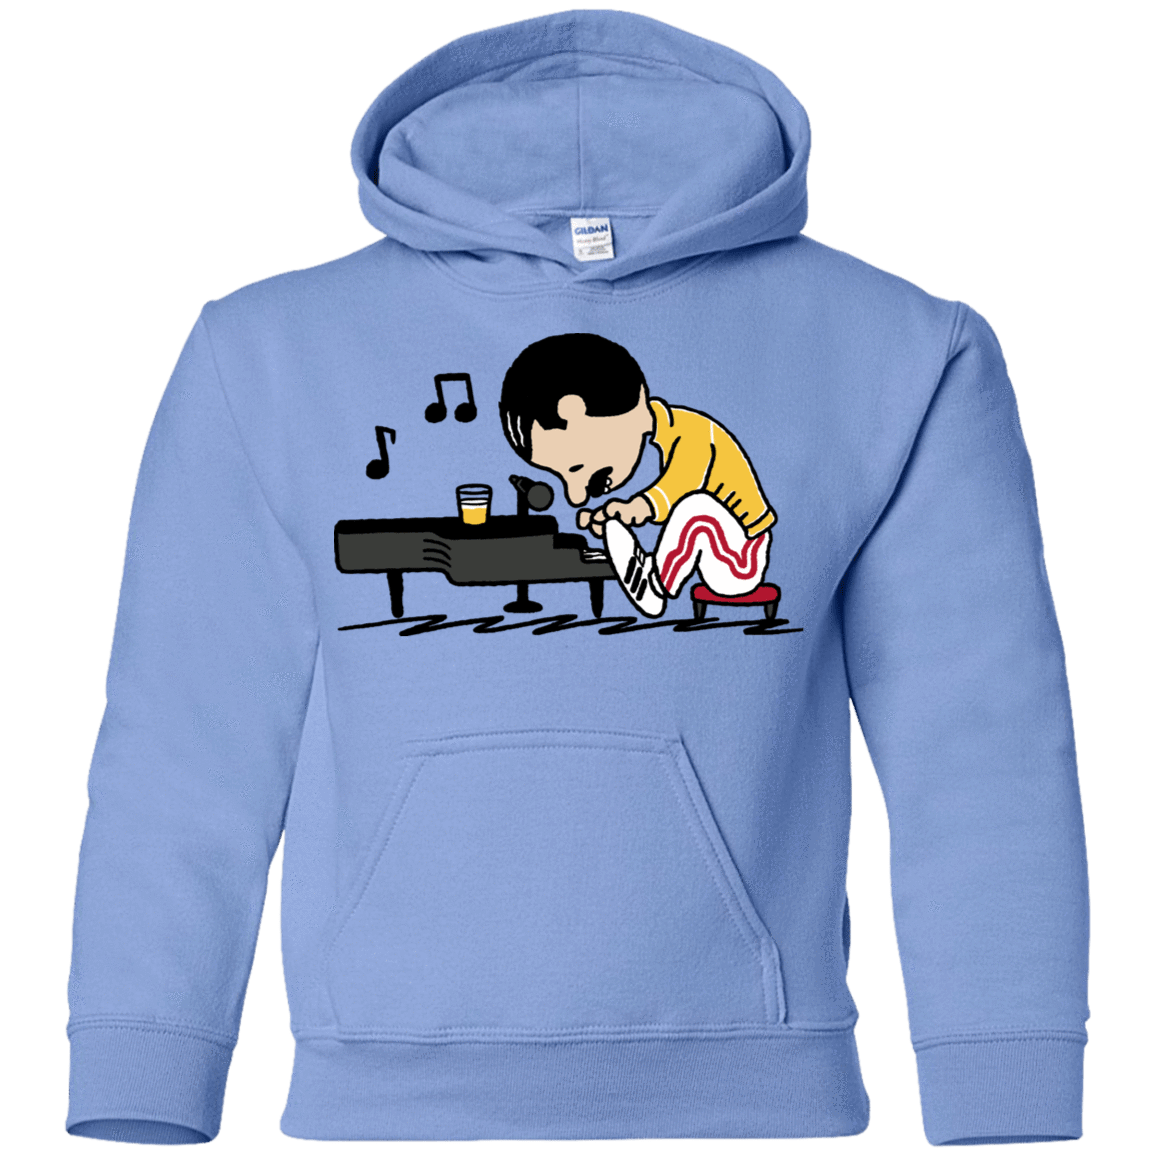 Sweatshirts Carolina Blue / YS Queenuts Youth Hoodie